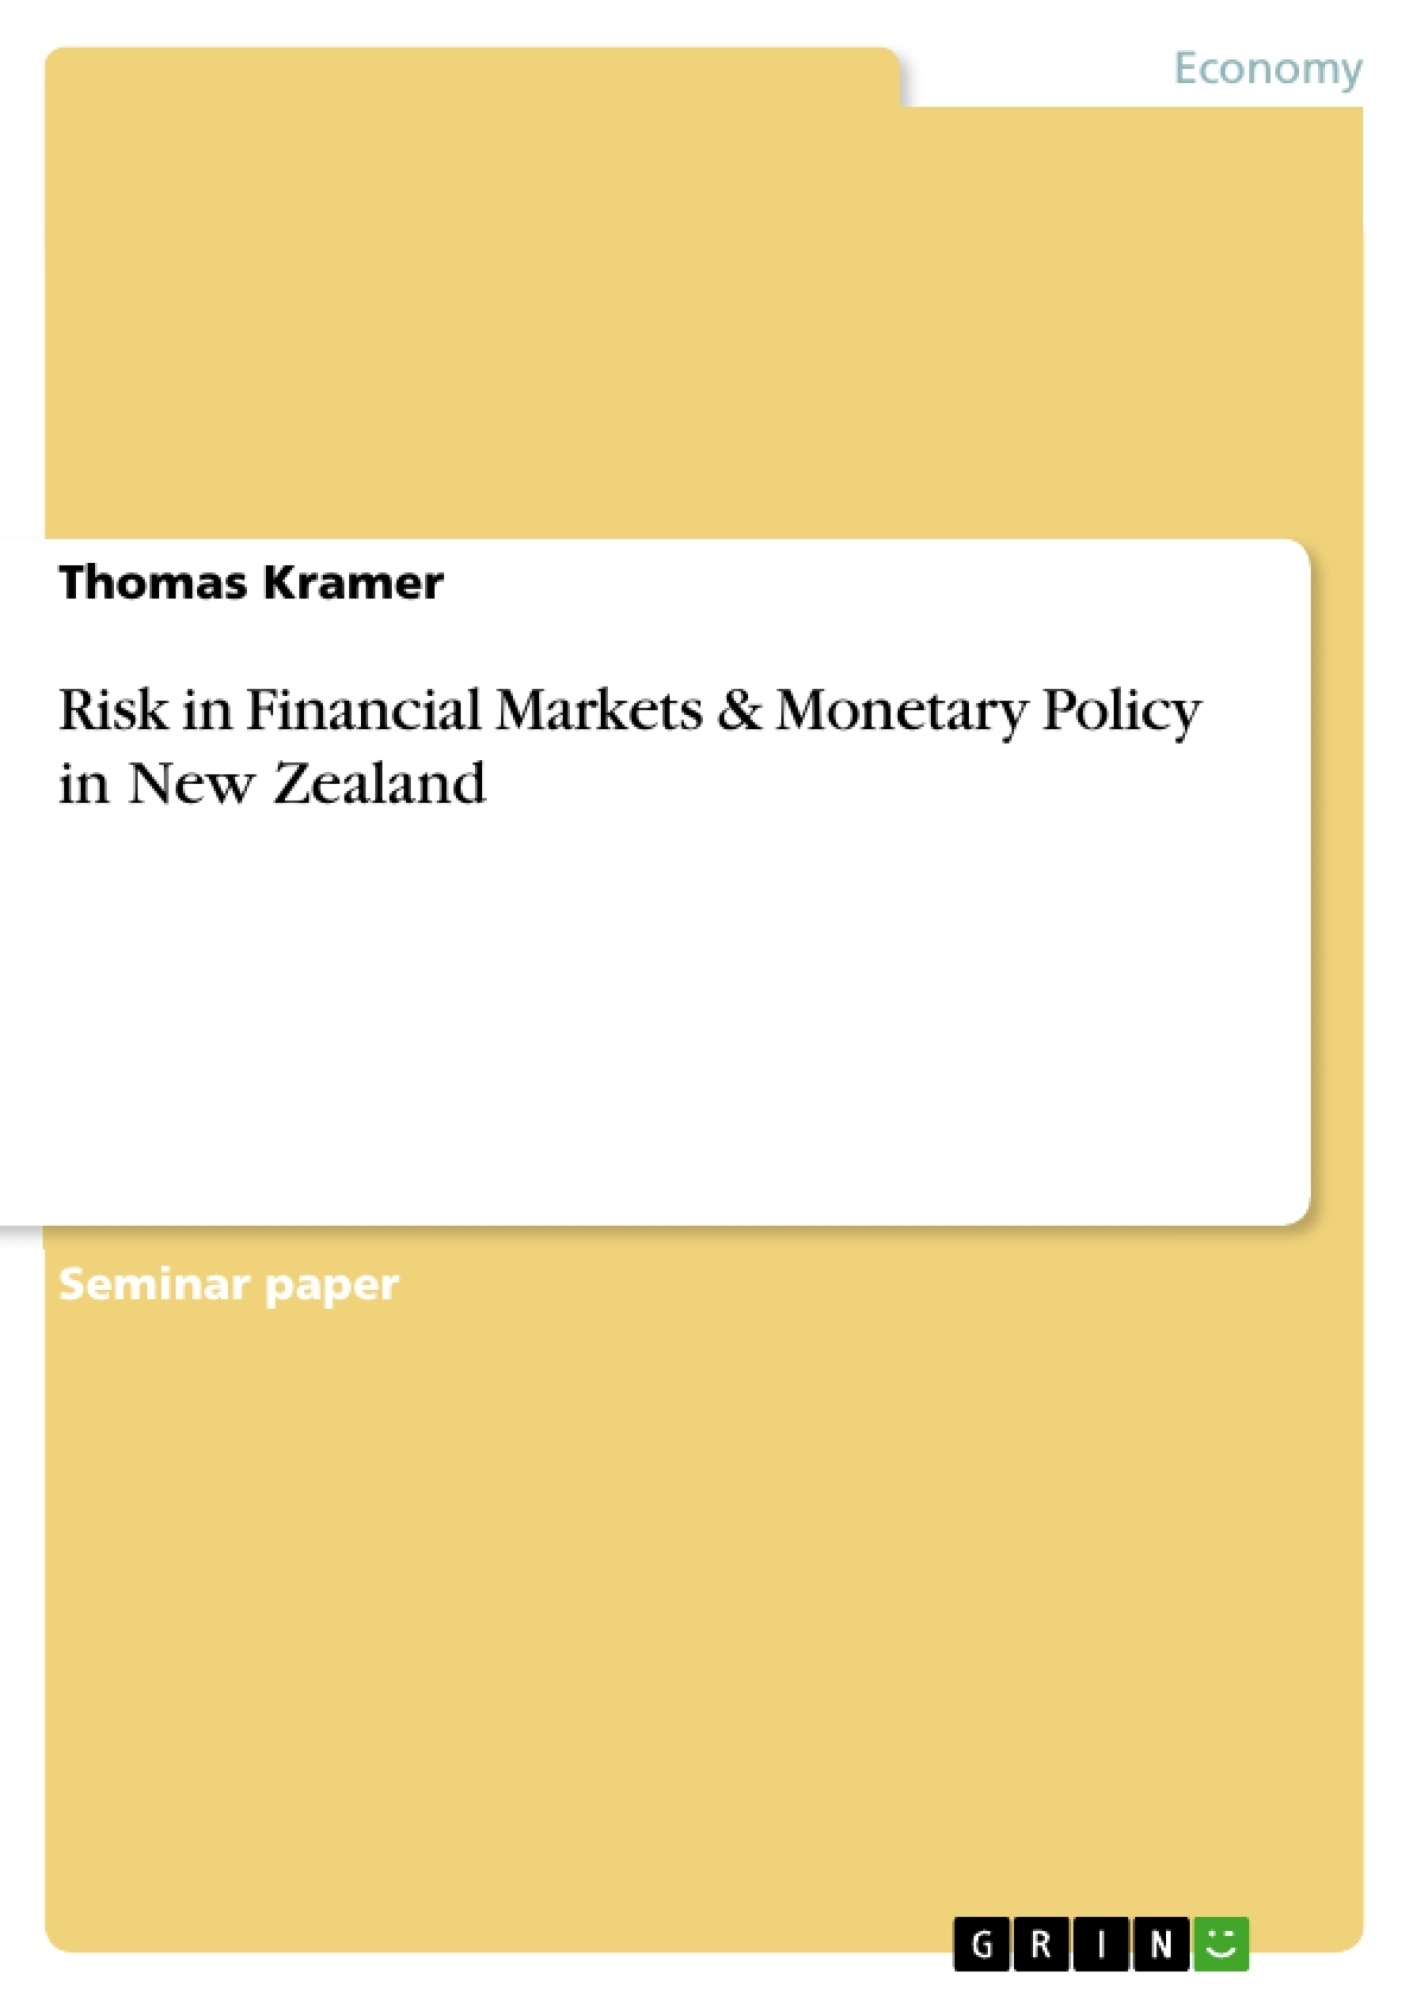 Title: Risk in Financial Markets & Monetary Policy in New Zealand